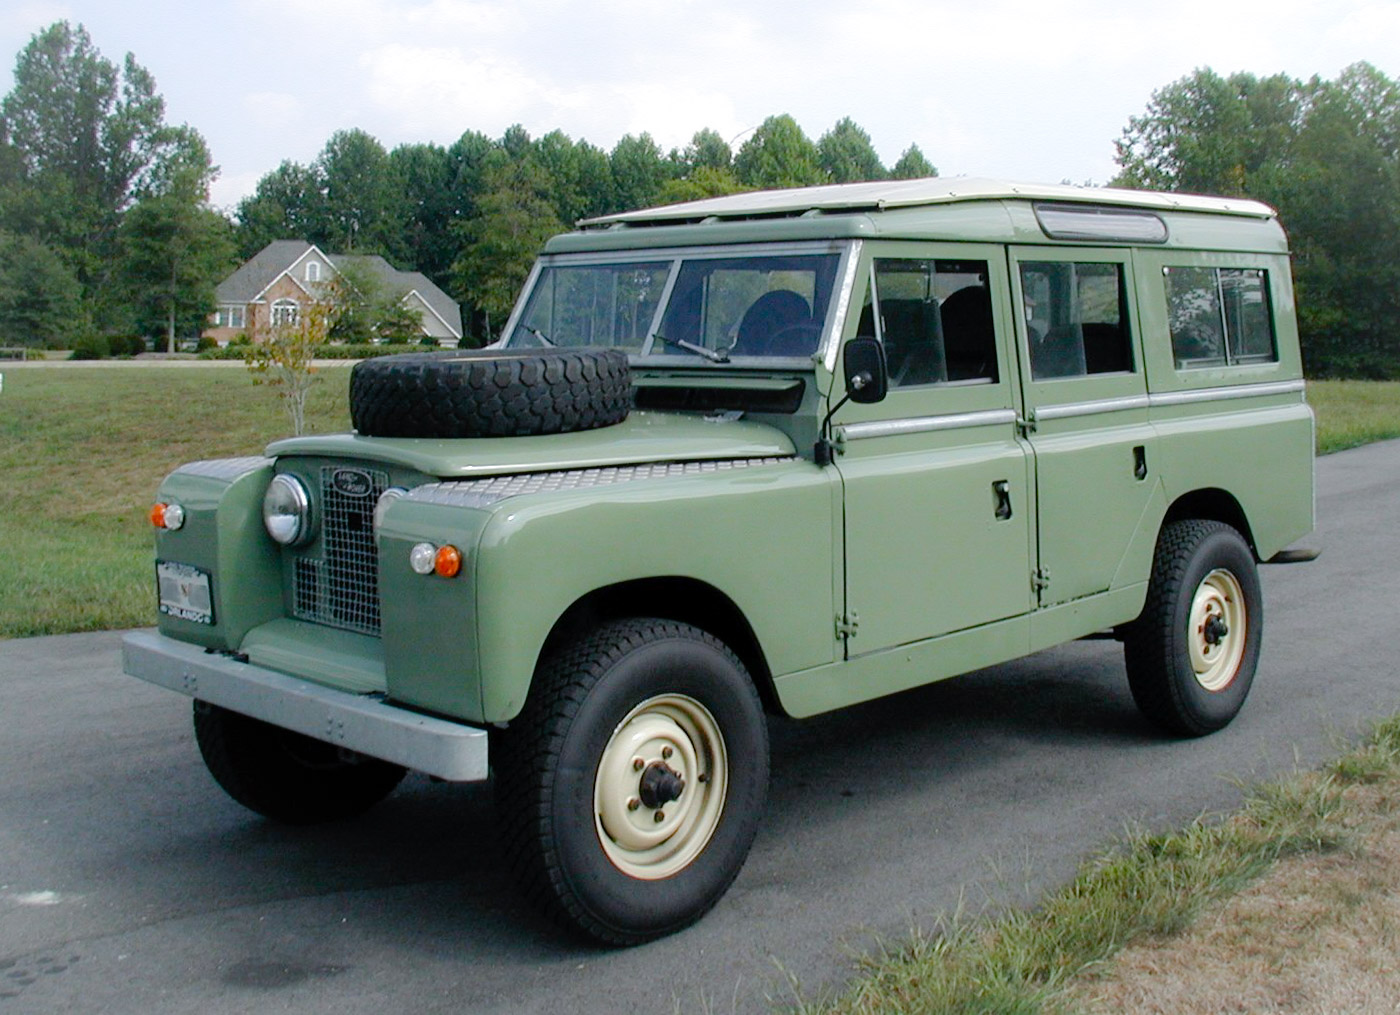 landrover defender history landrover. Black Bedroom Furniture Sets. Home Design Ideas